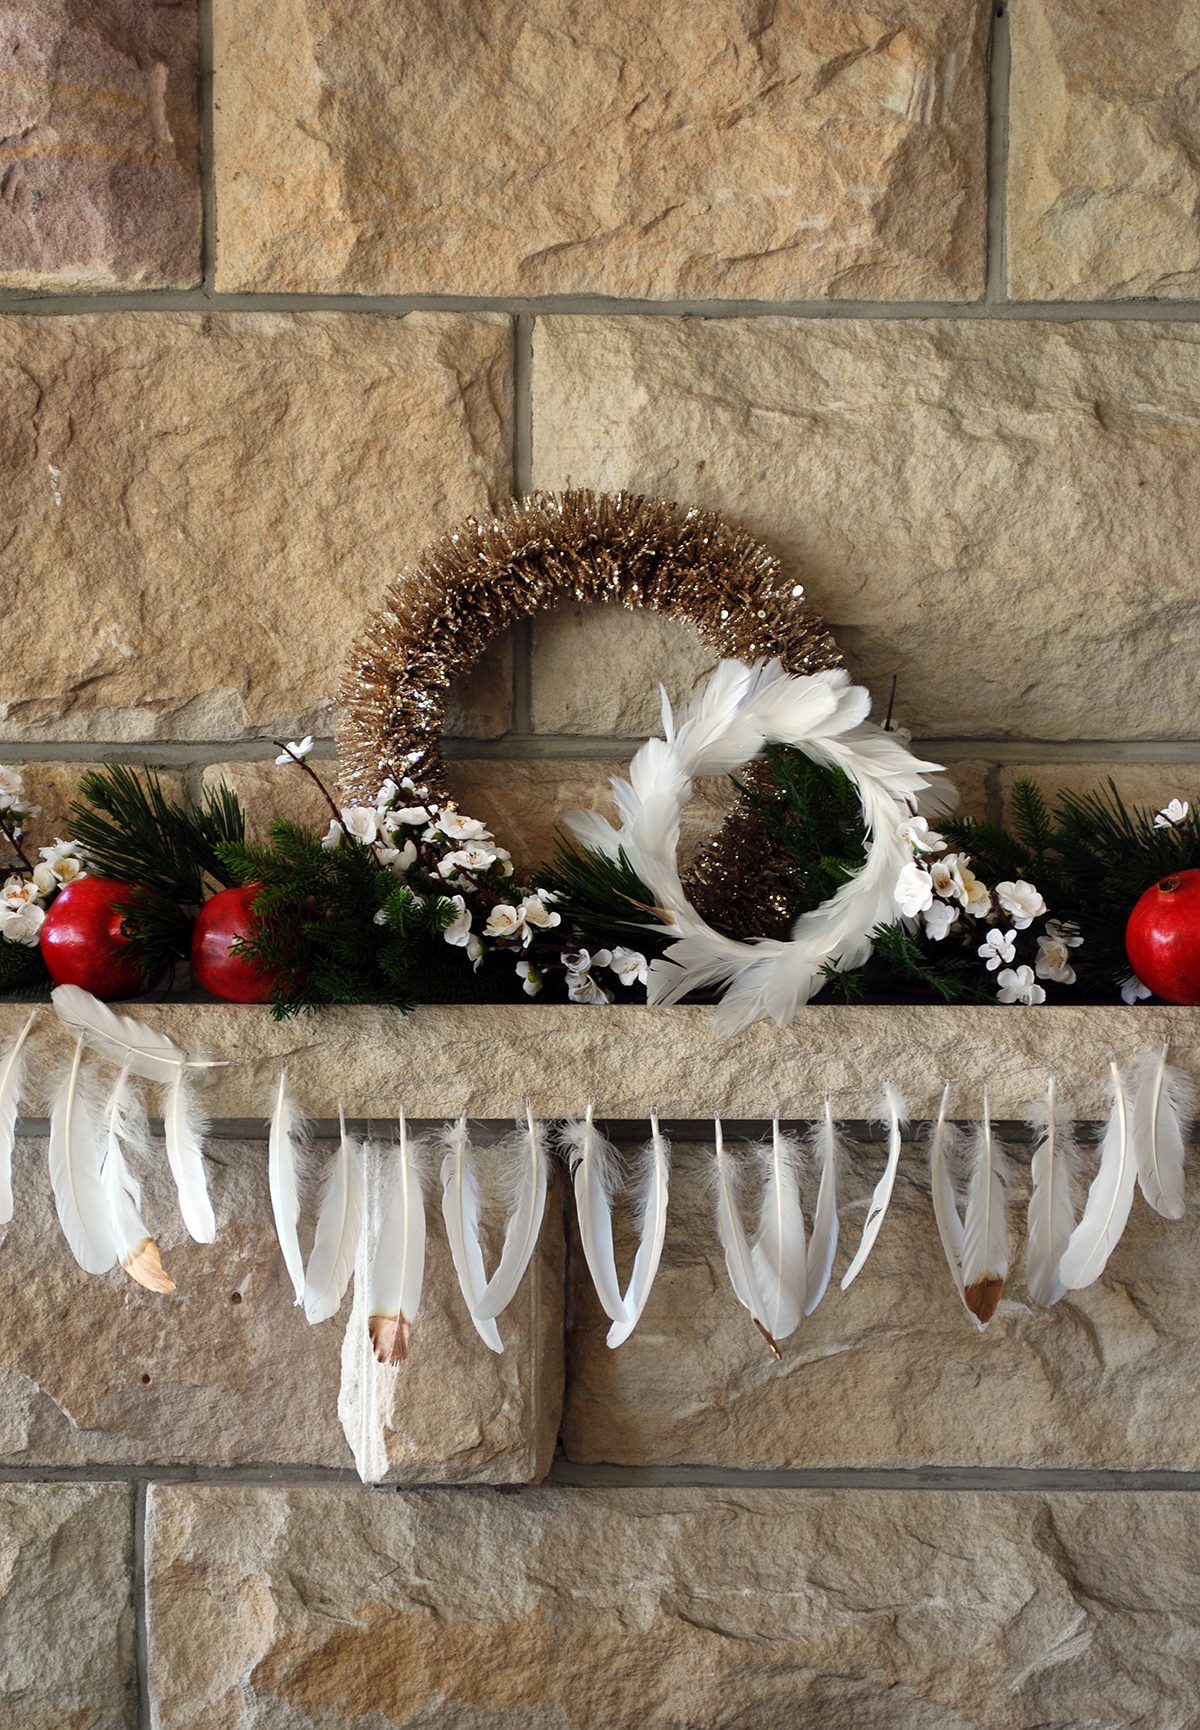 This super simple mantle arrangement is big on style and impact requires little effort.